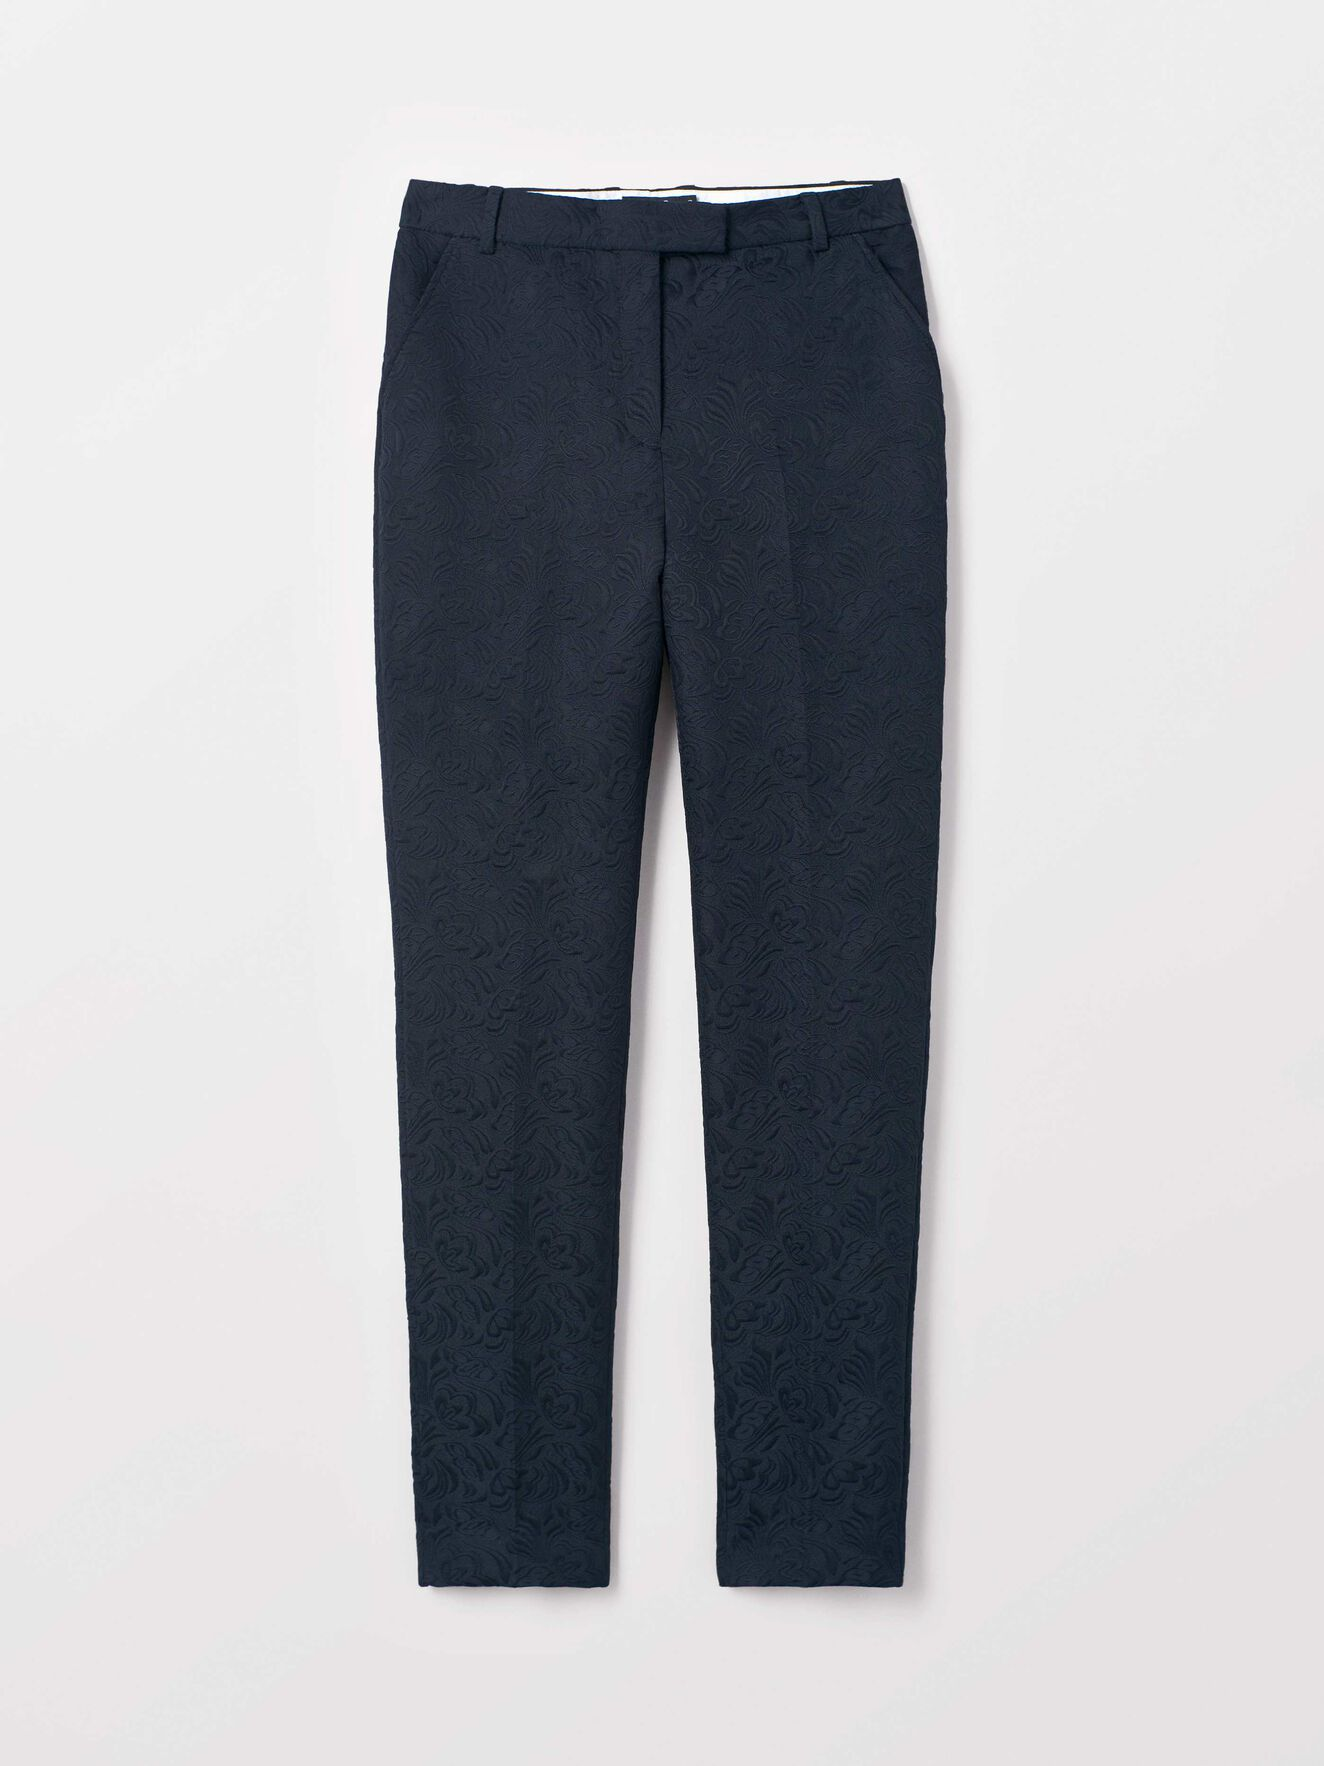 Loanella 2 Trousers  in Dark Sea from Tiger of Sweden